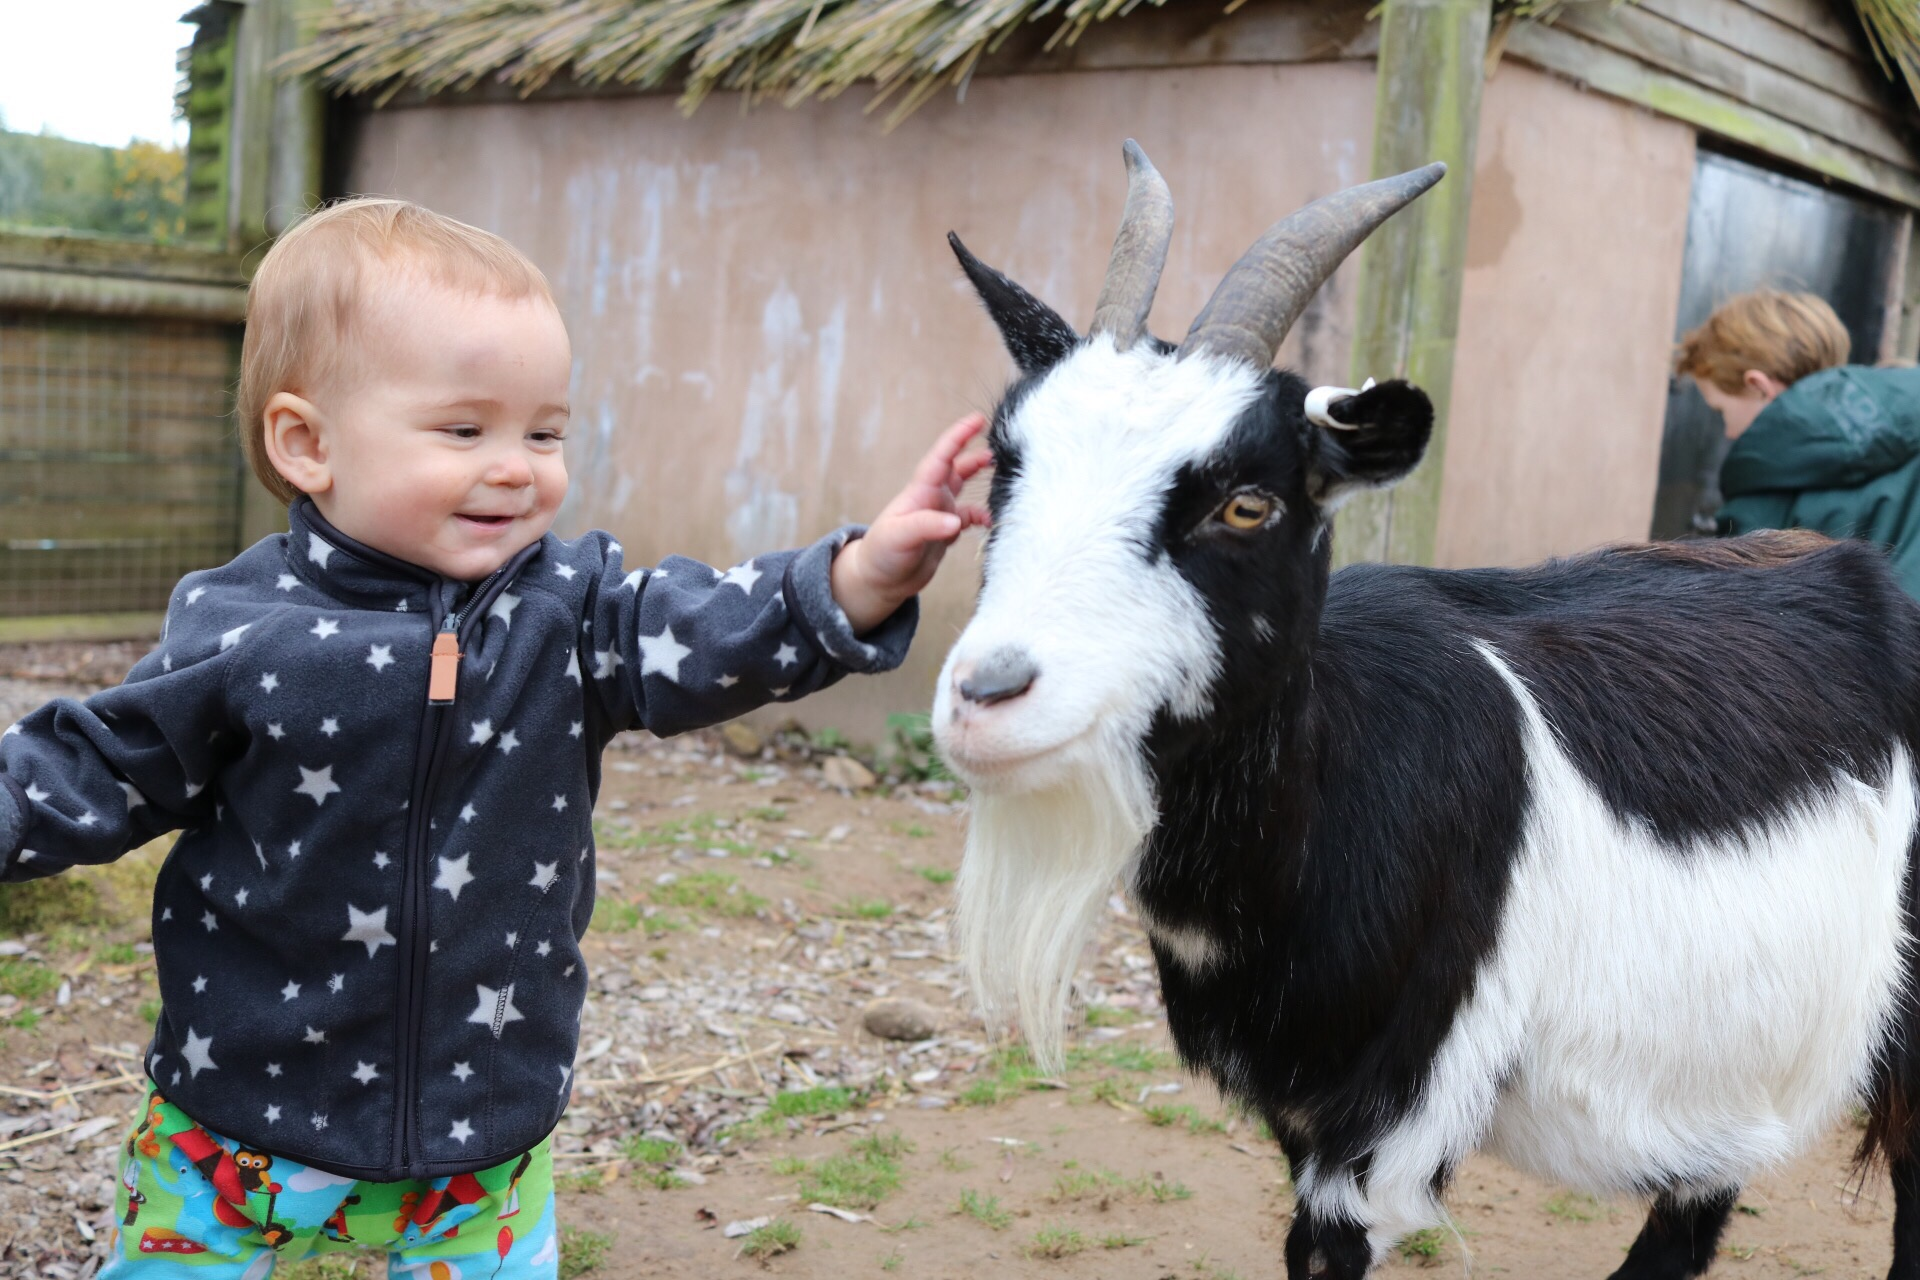 Baby touching goat at peak wildlife park